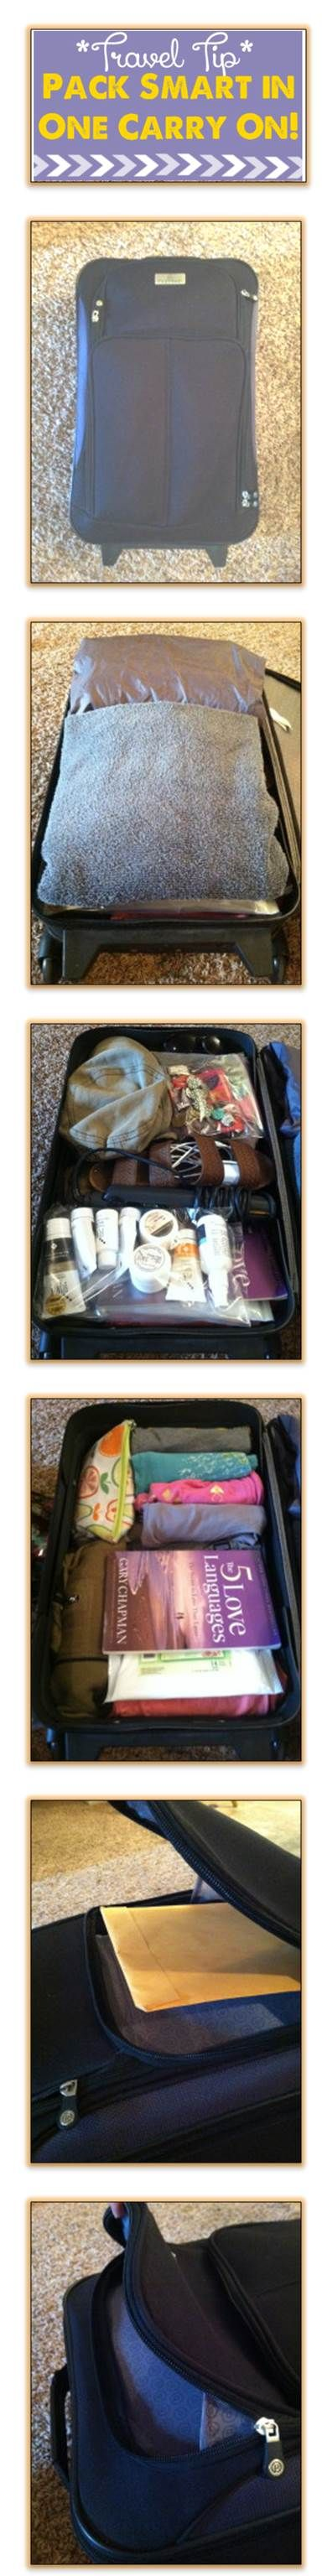 Everything has multiple functions or will be used more than once. (swimsuit coverup/scarf). Pack lightest weight clothing, rolled tightly. Wear thick/heavy clothing or shoes on plane. For warmth, thin hooded fleece+raincoat. All accessories in sandwich Ziplock. Take thinnest towel(opt). Take lighter book. Limit your toiletries to 1 Quart Ziplock no bigger than 3.4 oz. bottles as per airline regs. Manilla envelope: boarding passes, passports+documents together+secure. Never leave bag…